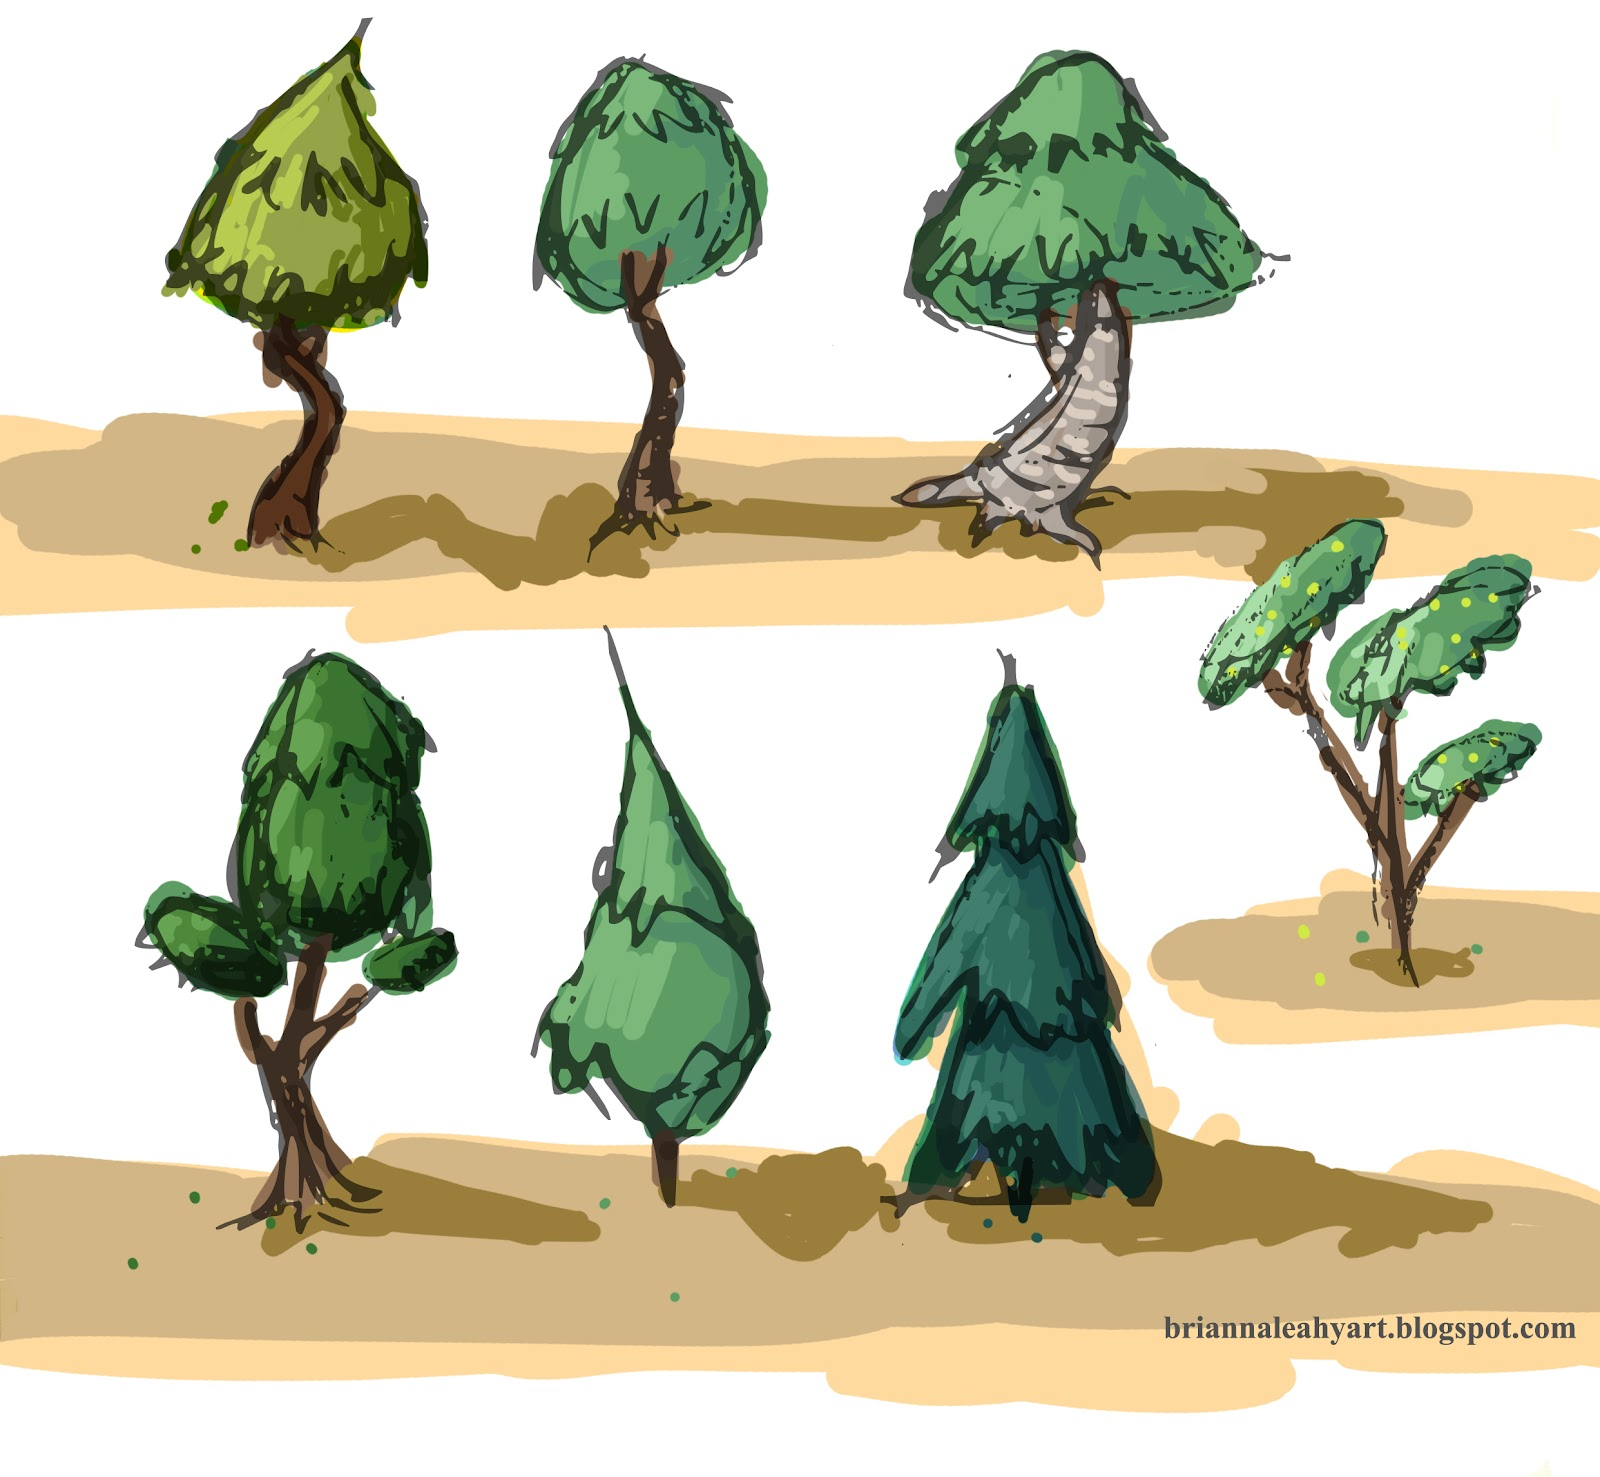 Art Adventures Blog Original Stylized Tree Designs For any size you provide, the whole design is included! art adventures blog blogger